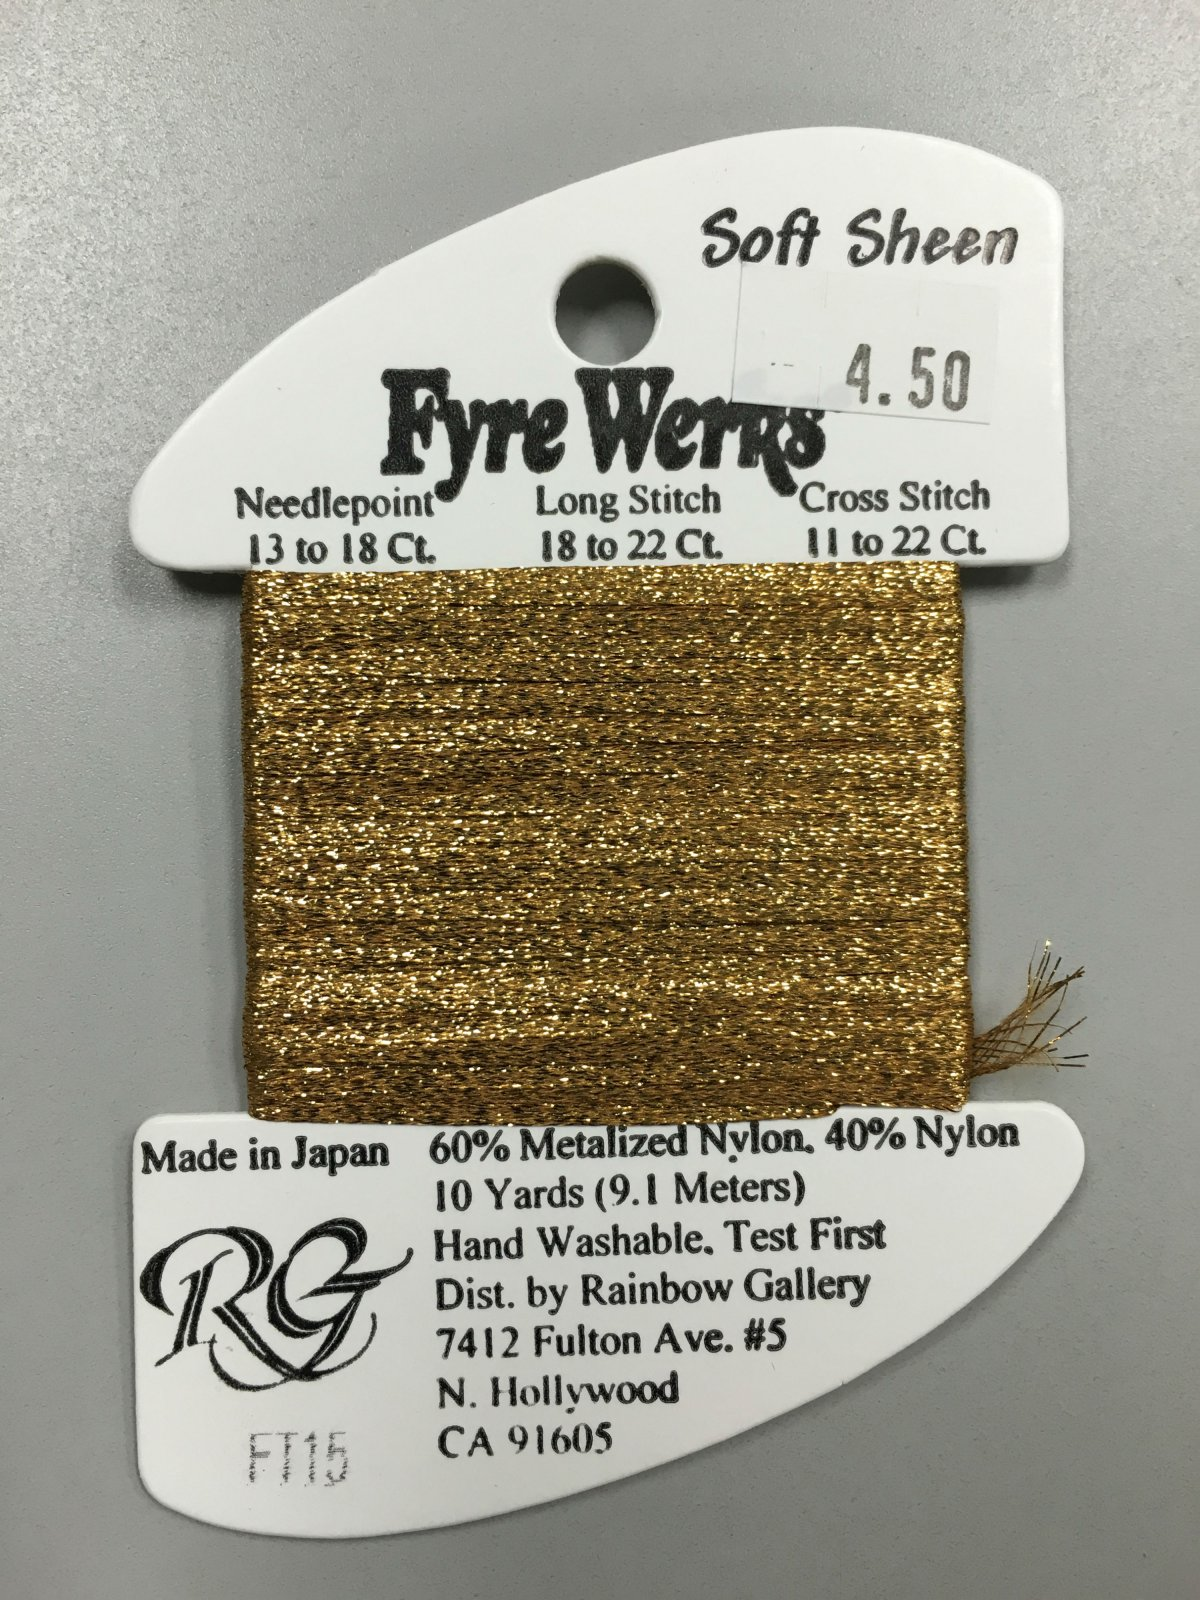 Fyre Werks Soft Sheen FT15